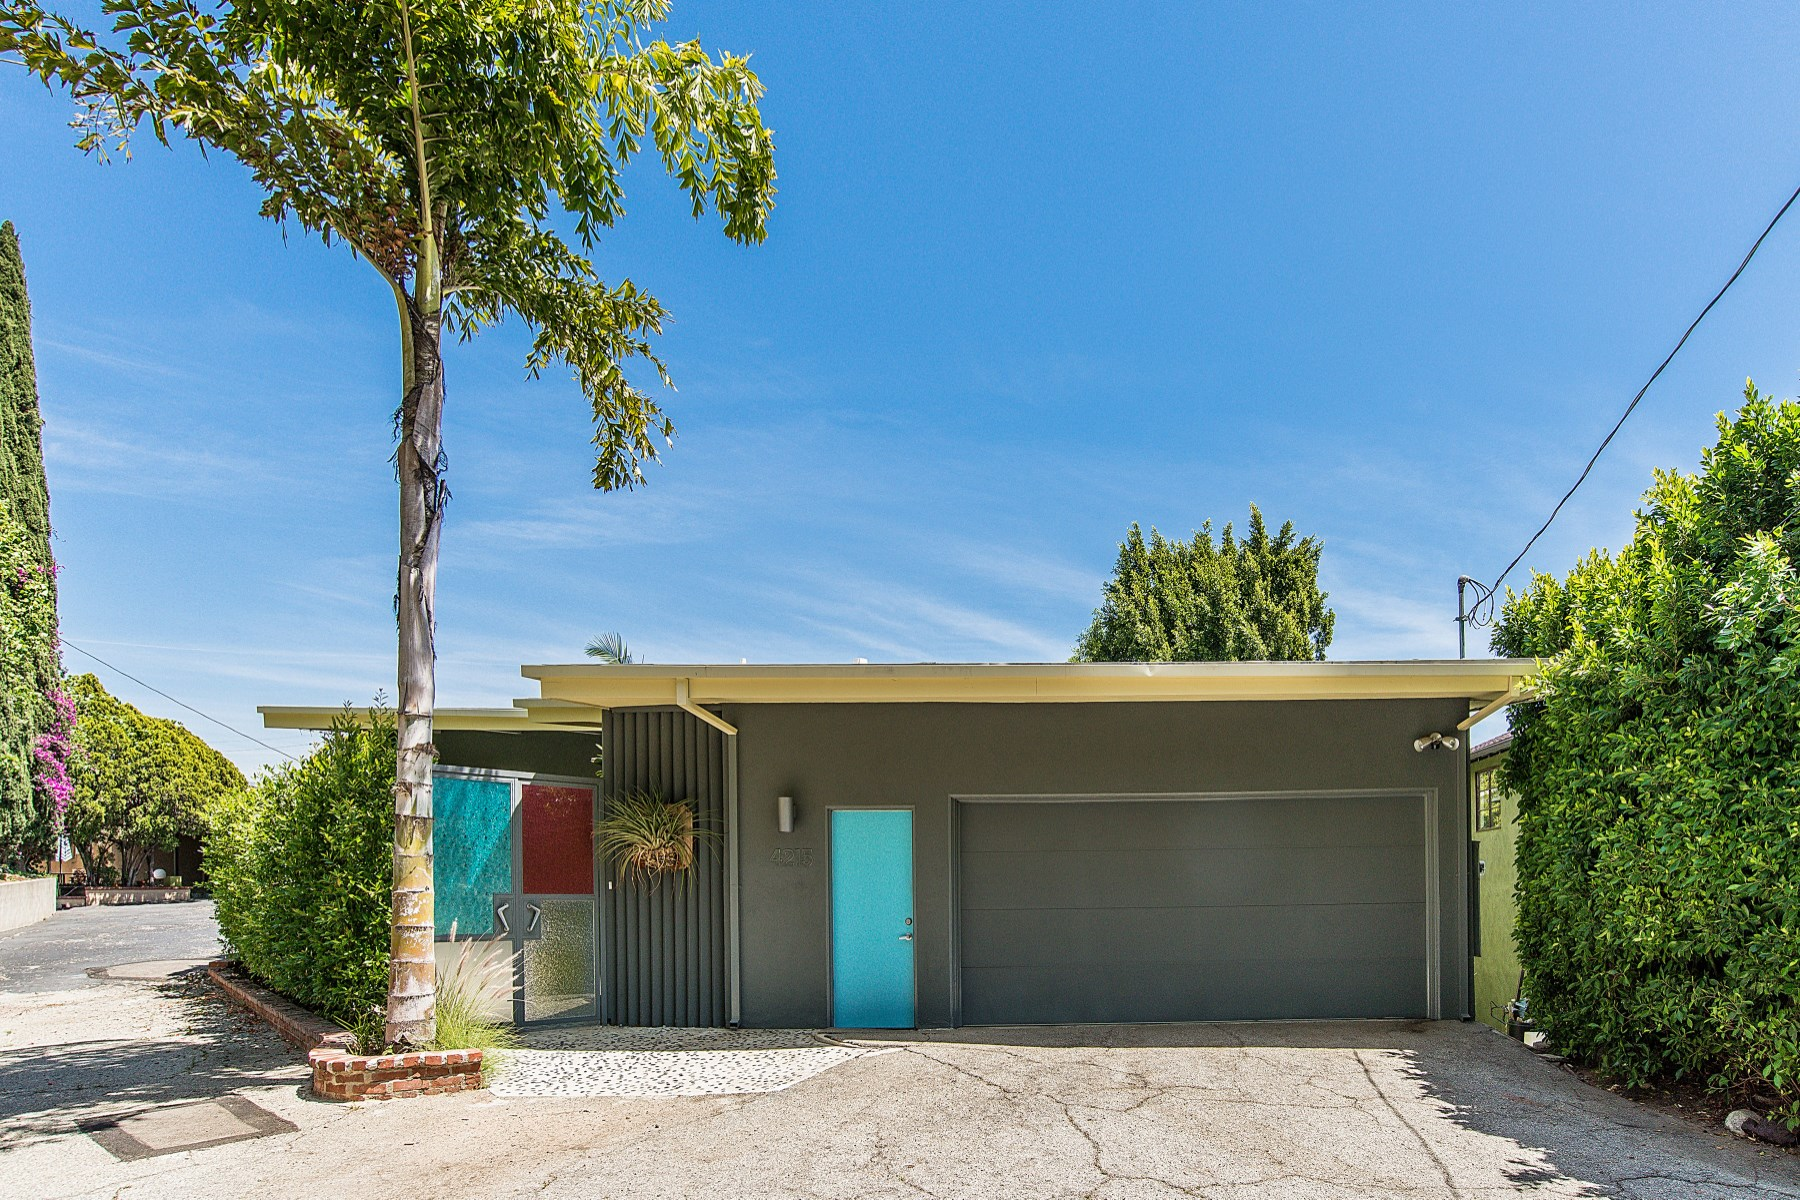 Single Family Home for Sale at 4215 Caledonia Way Glassell Park, Los Angeles, California, 90065 United States